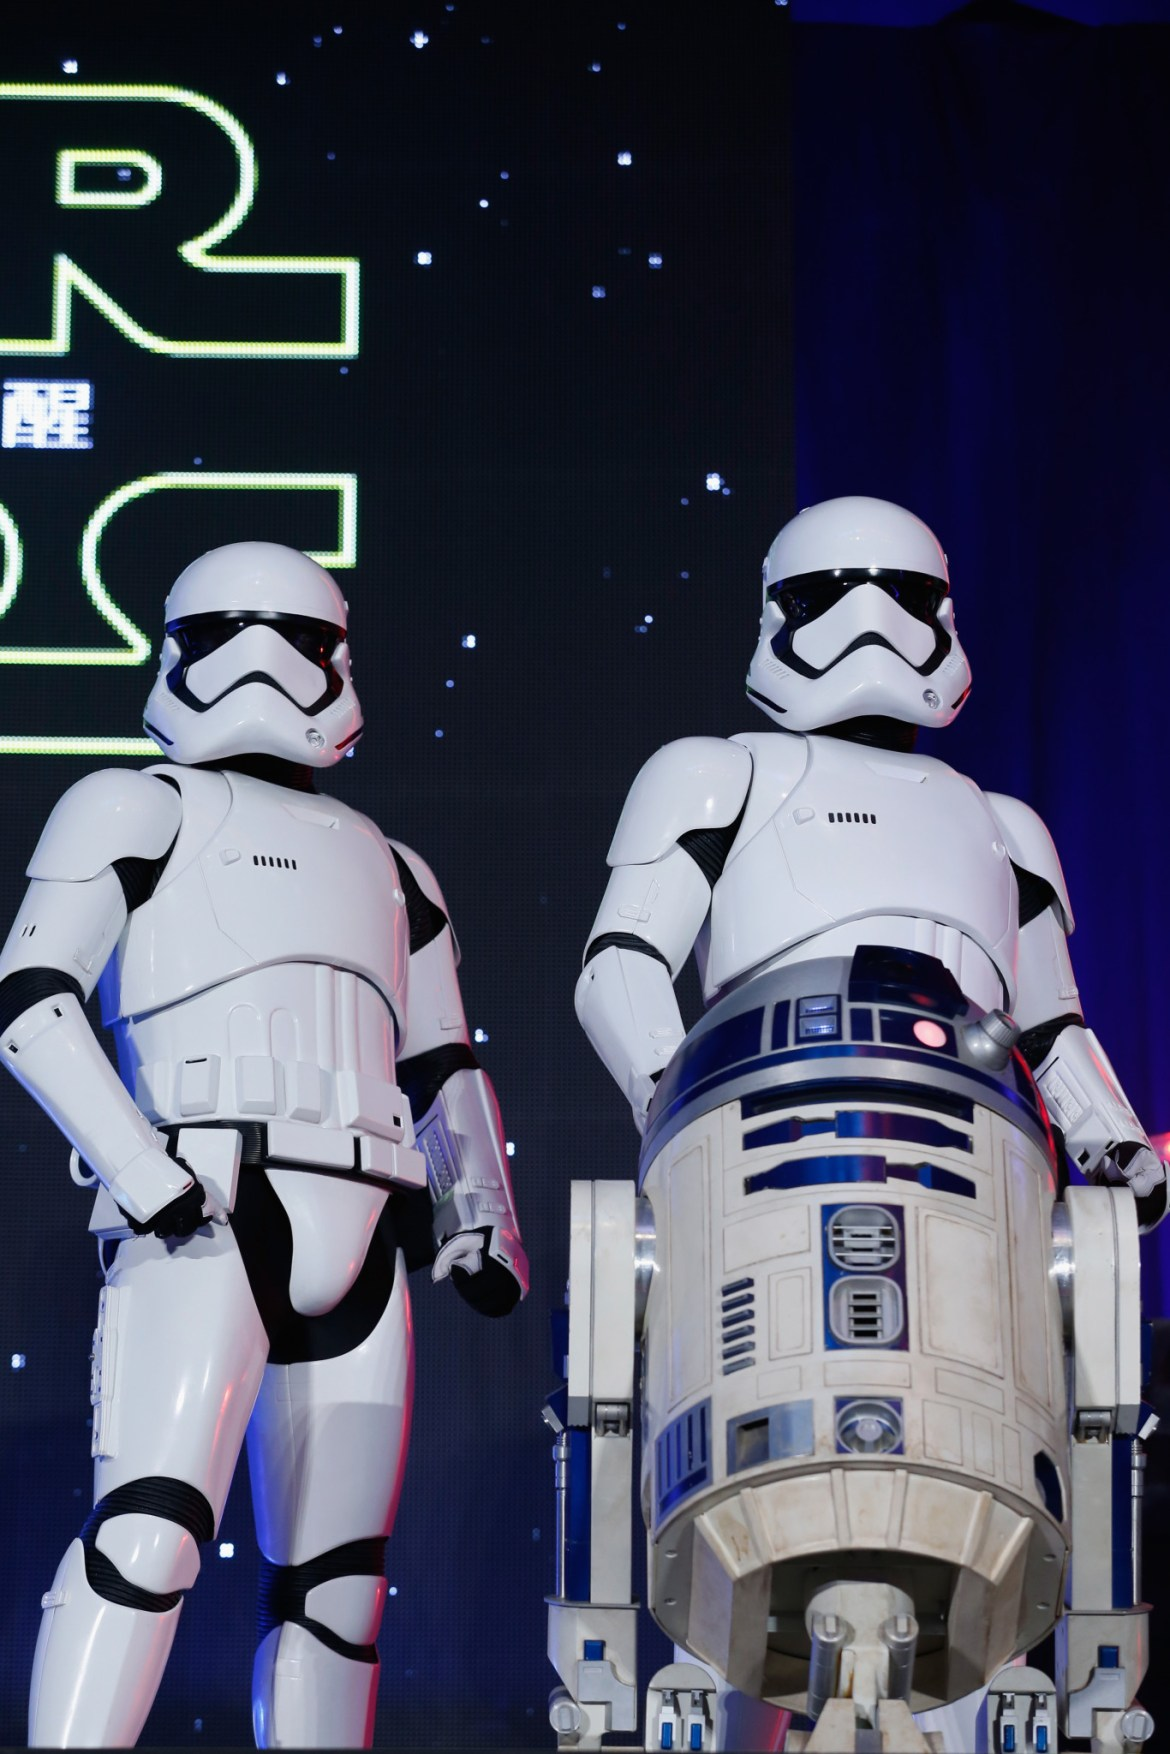 Star Wars: The Force Awakens: Fan Events in Sydney and Tokyo